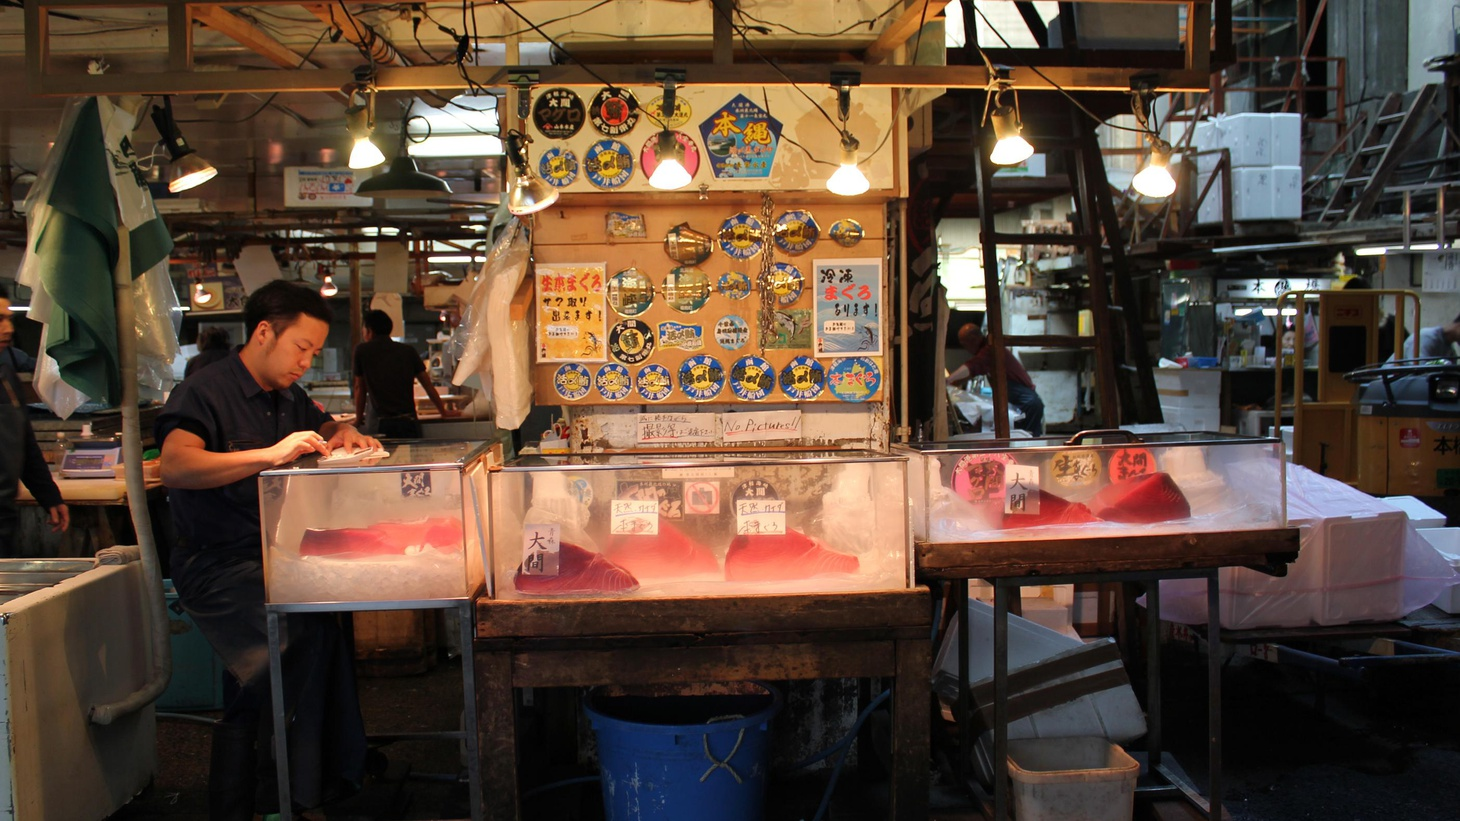 From the Tsukiji Market's tuna auction, to Japanese soul food and dashi, we take a look at Japanese cuisine.